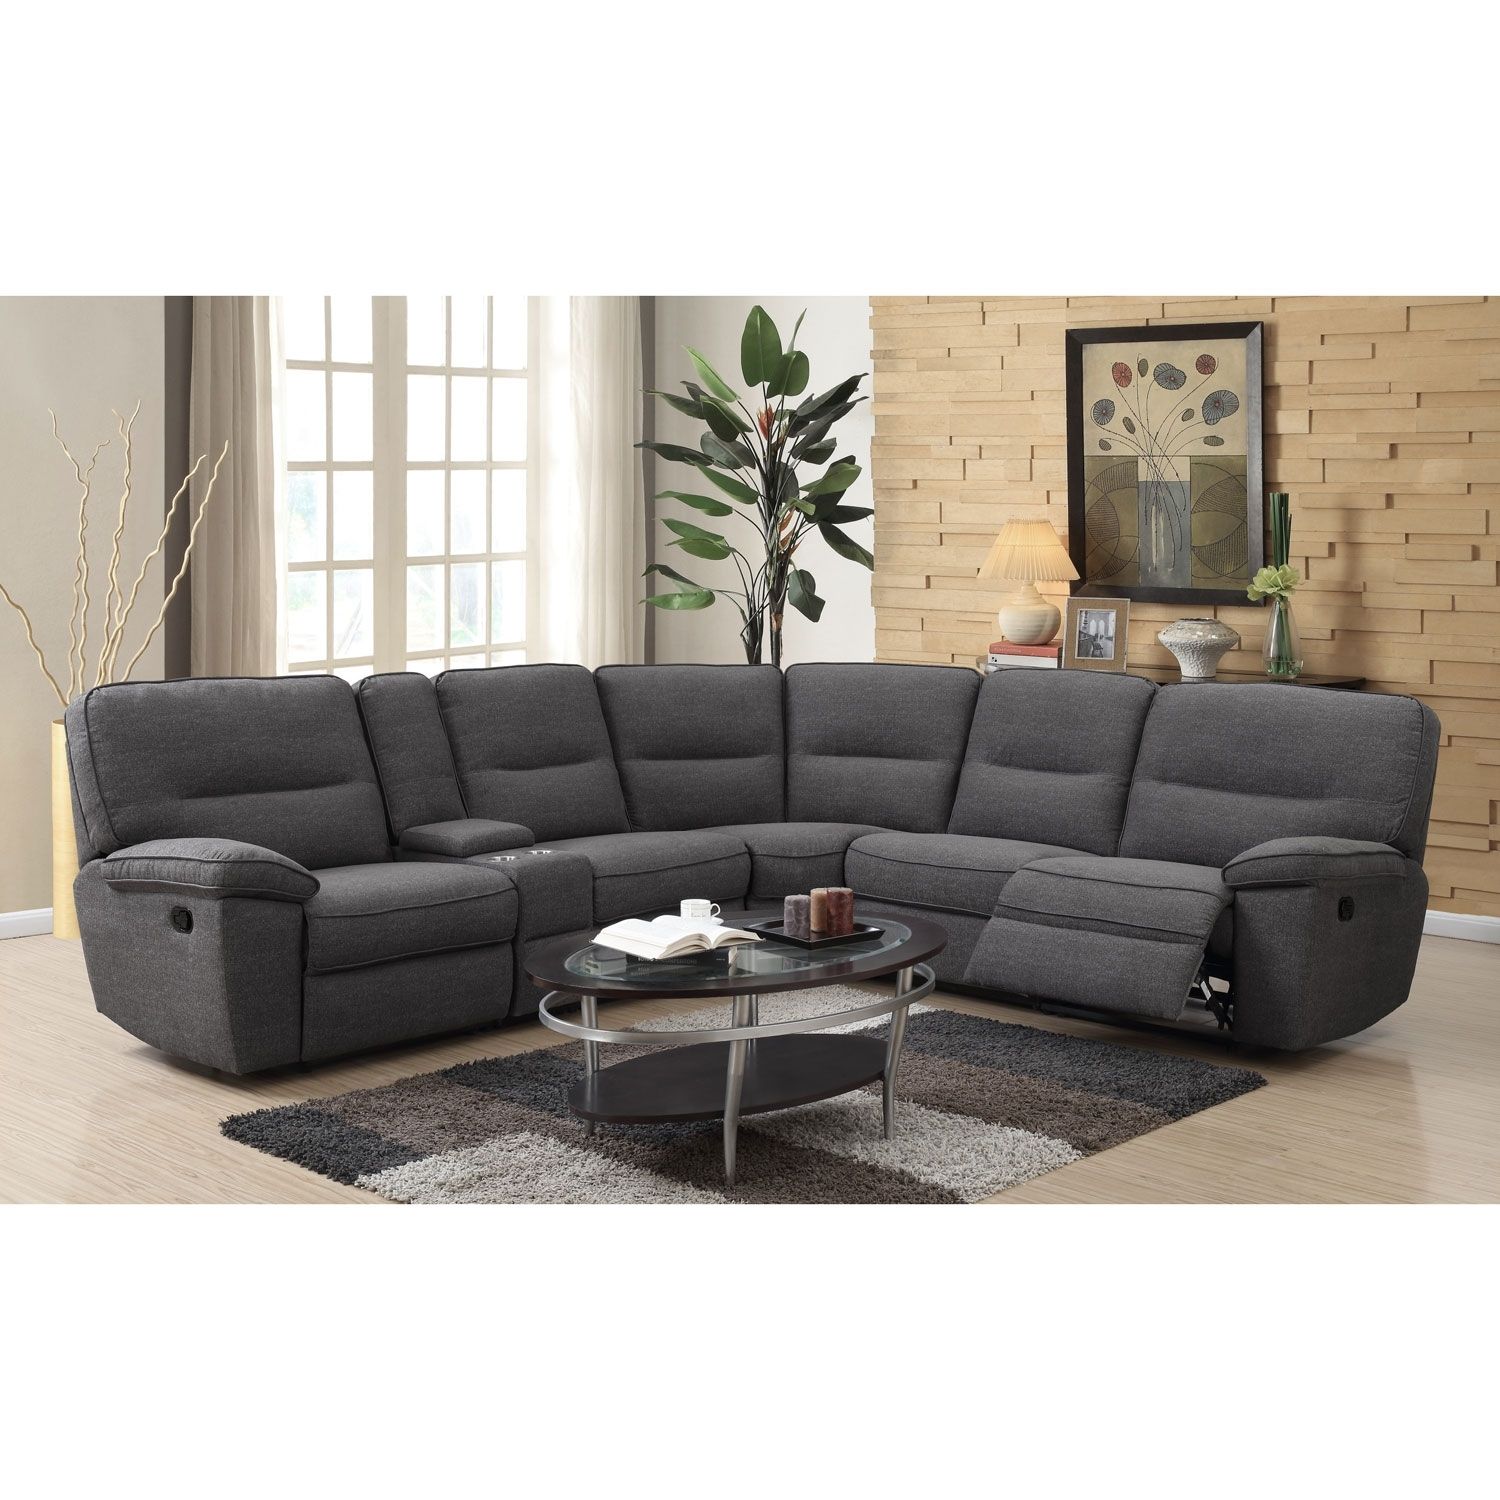 Emerald Home Furnishings Emerald Home Alberta 6 Piece Sectional For Norfolk Grey 6 Piece Sectionals With Raf Chaise (Photo 27 of 30)